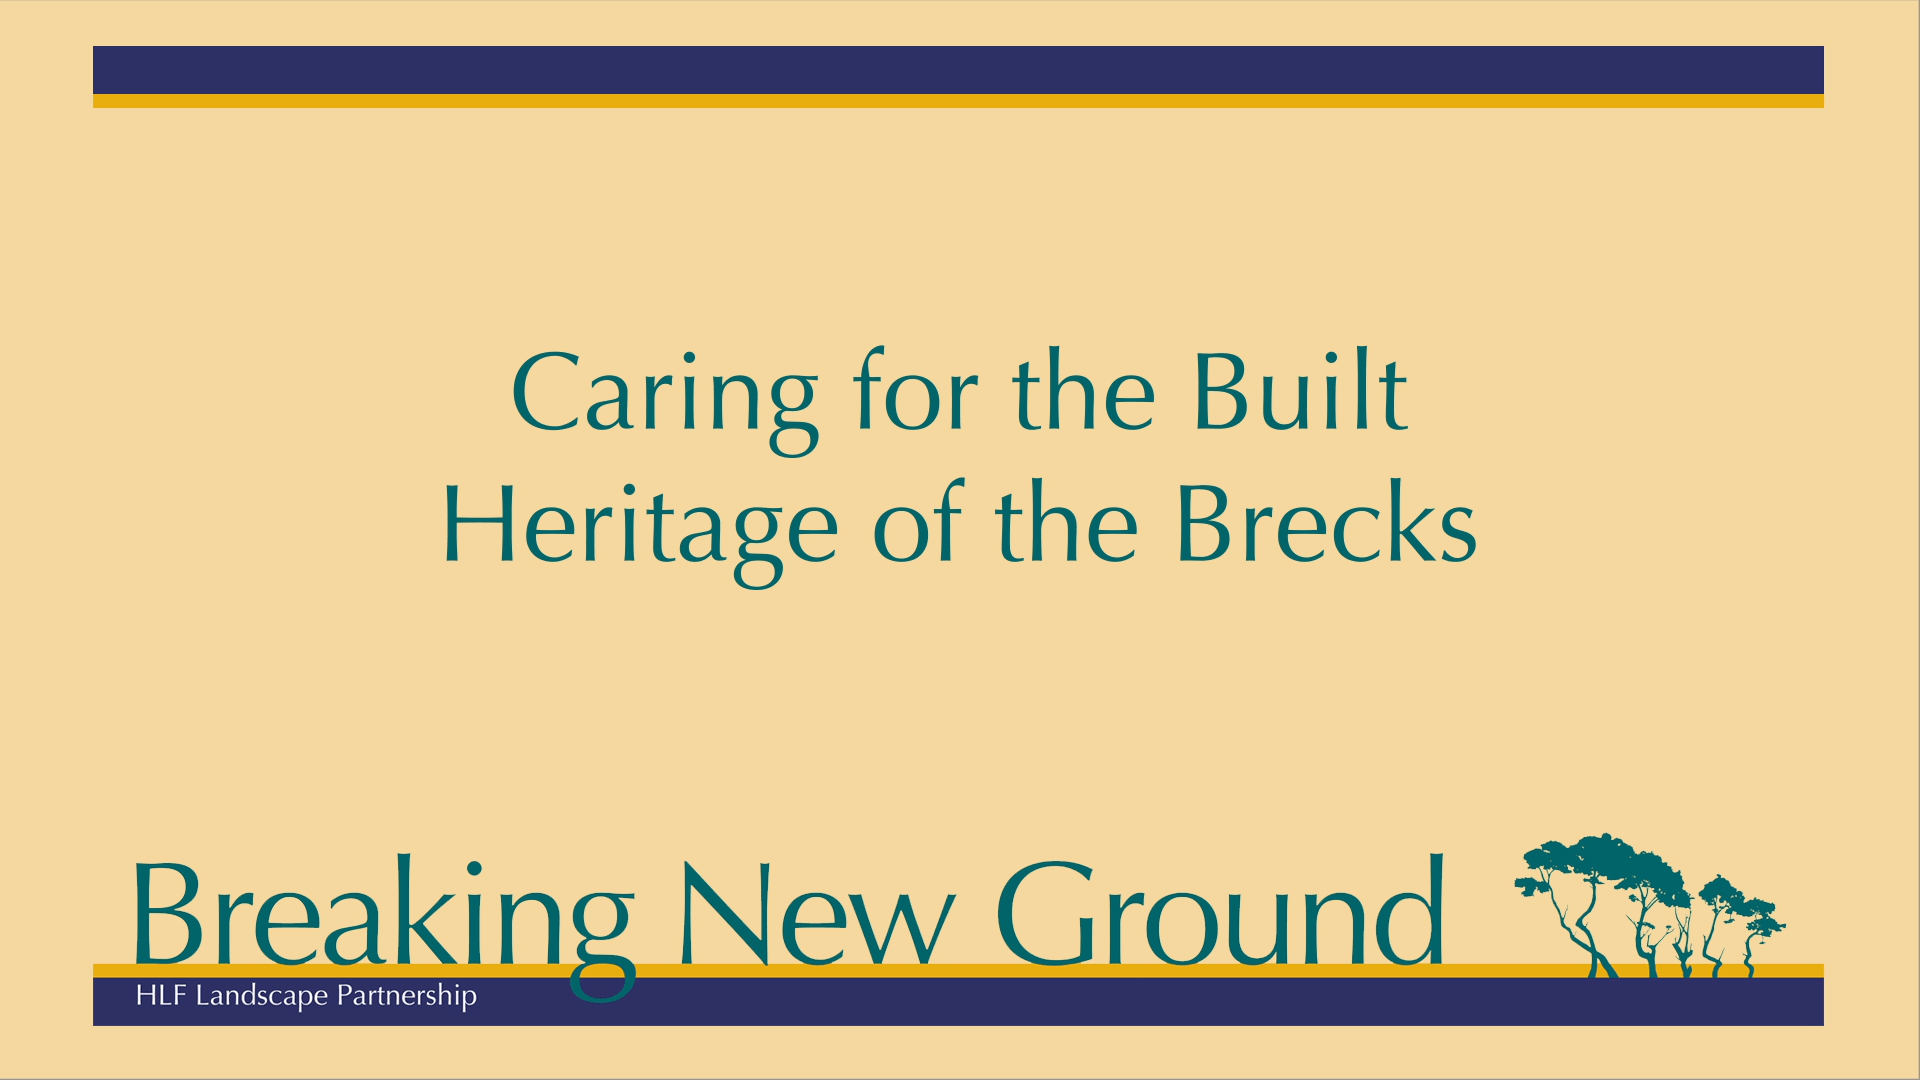 Caring For The Built Heritage of The Brecks